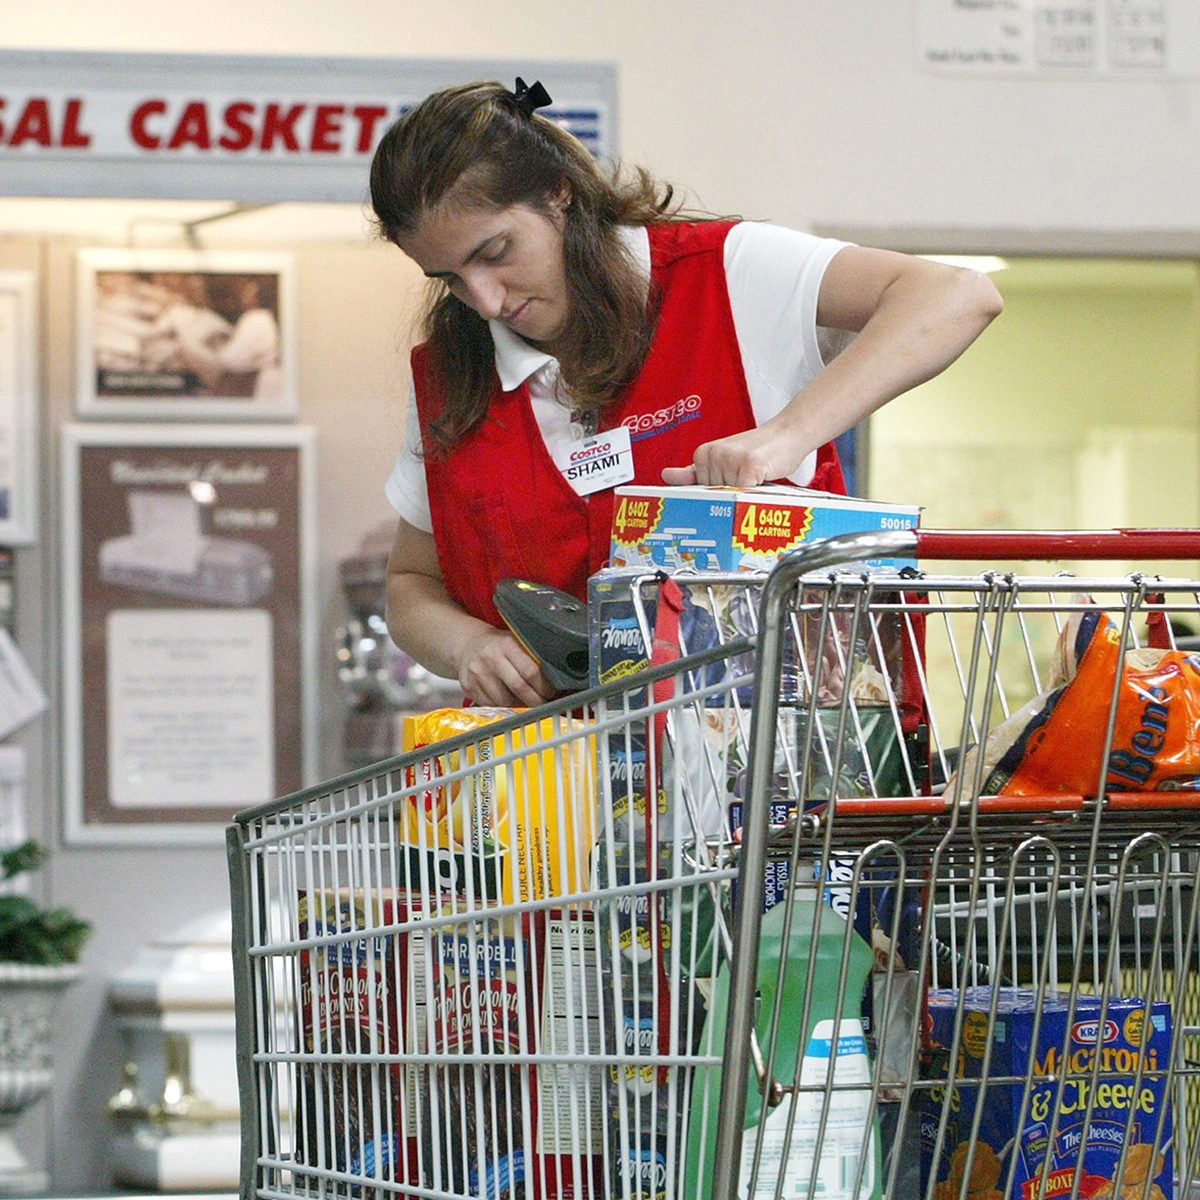 Grocery bagger putting items into a cart